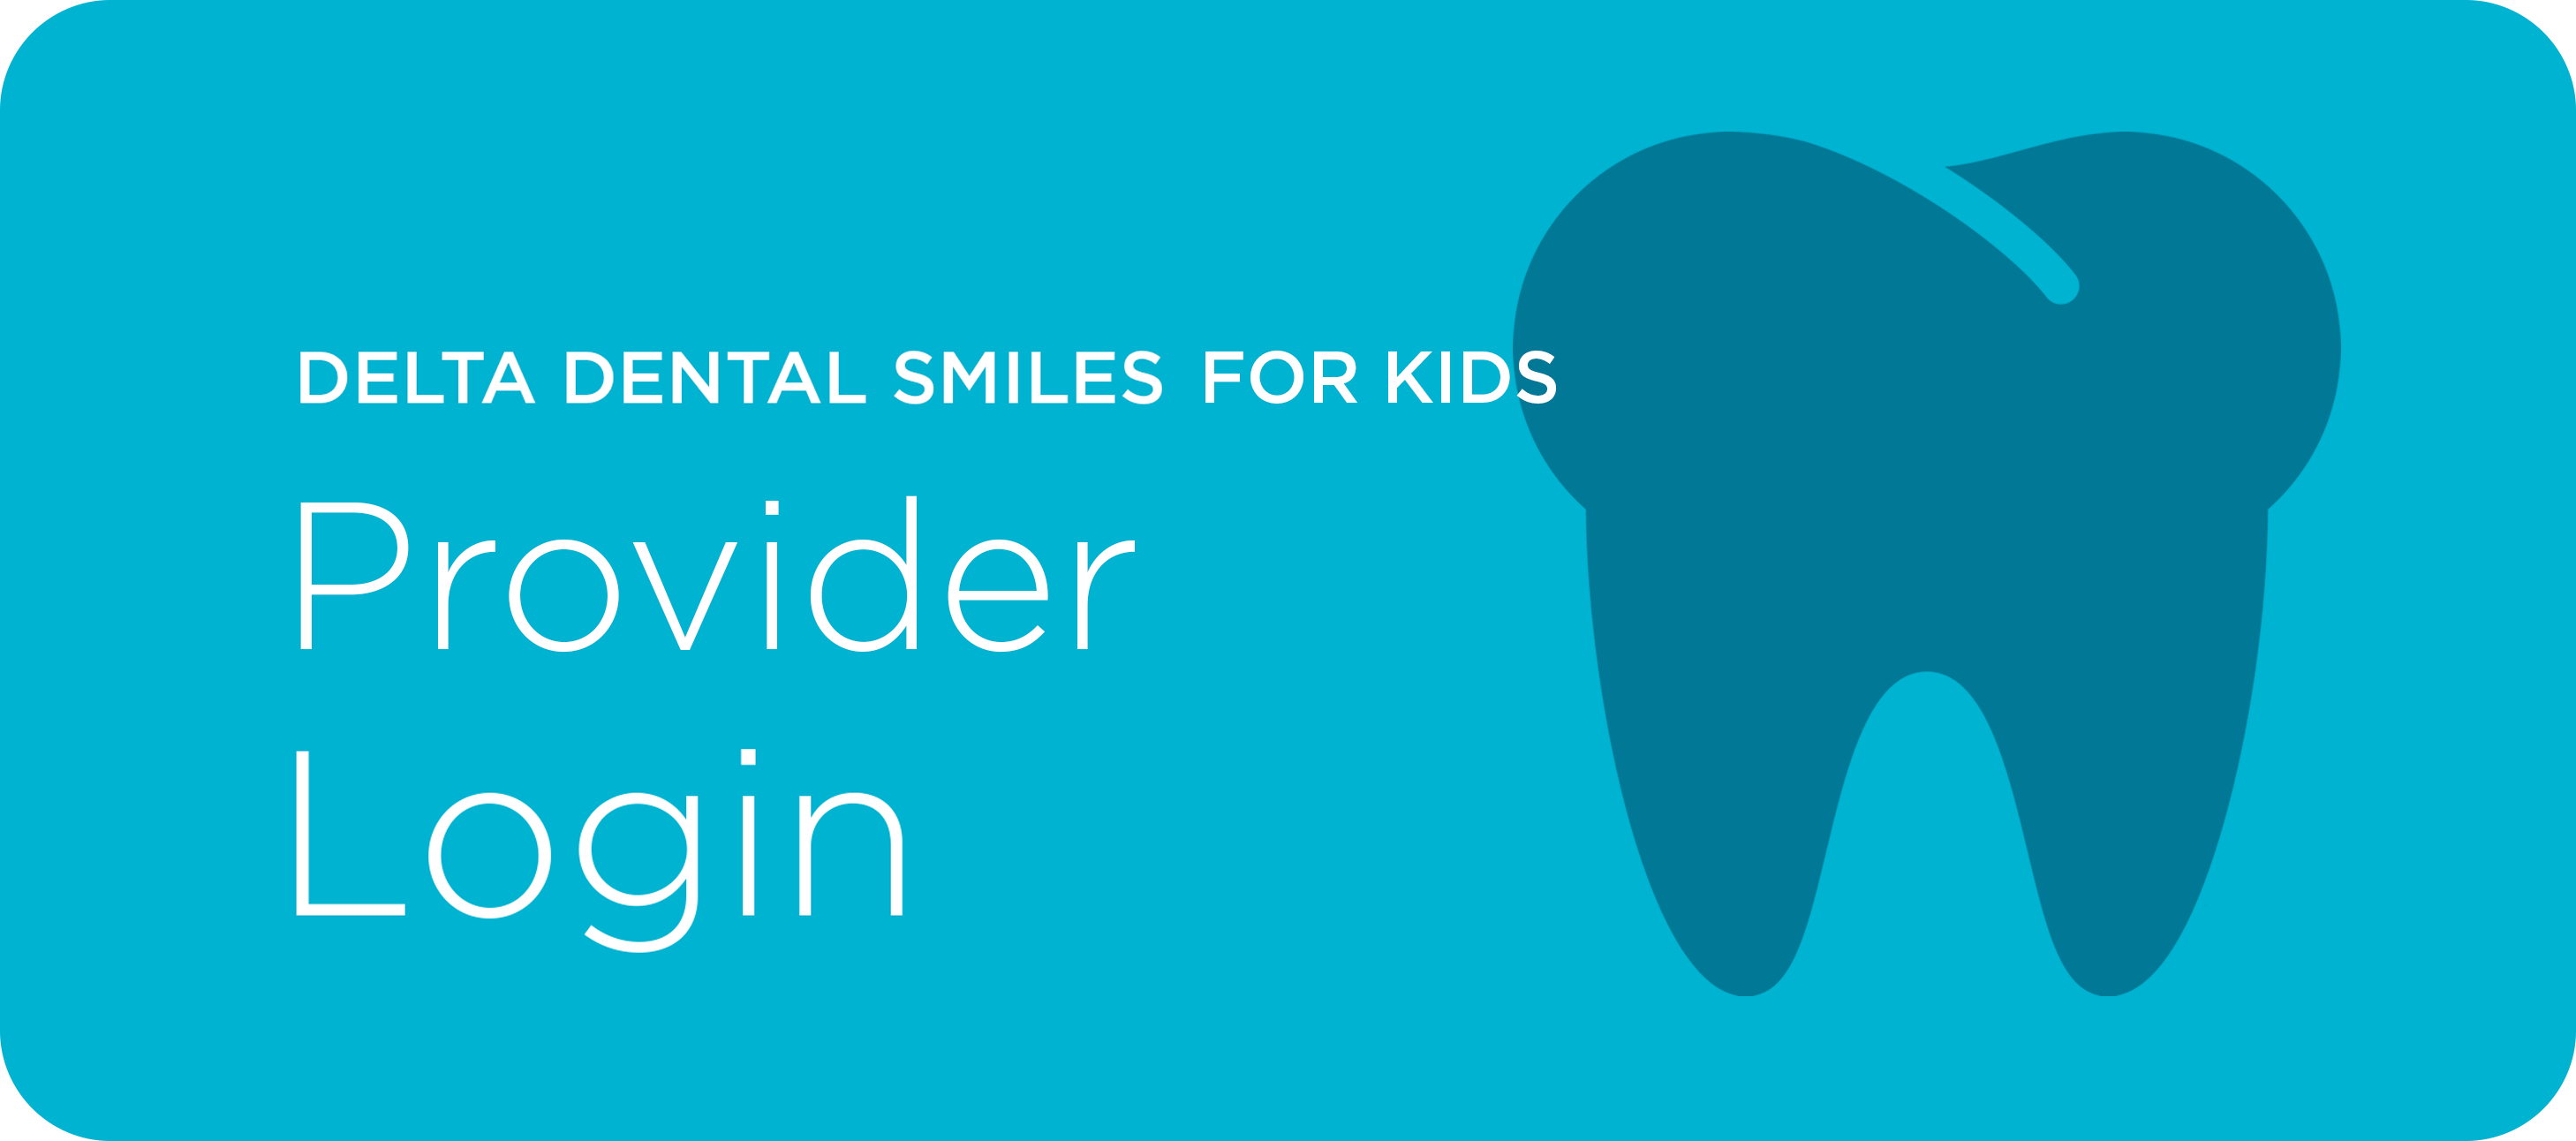 Delta Dental Smiles for Kids Provider Login